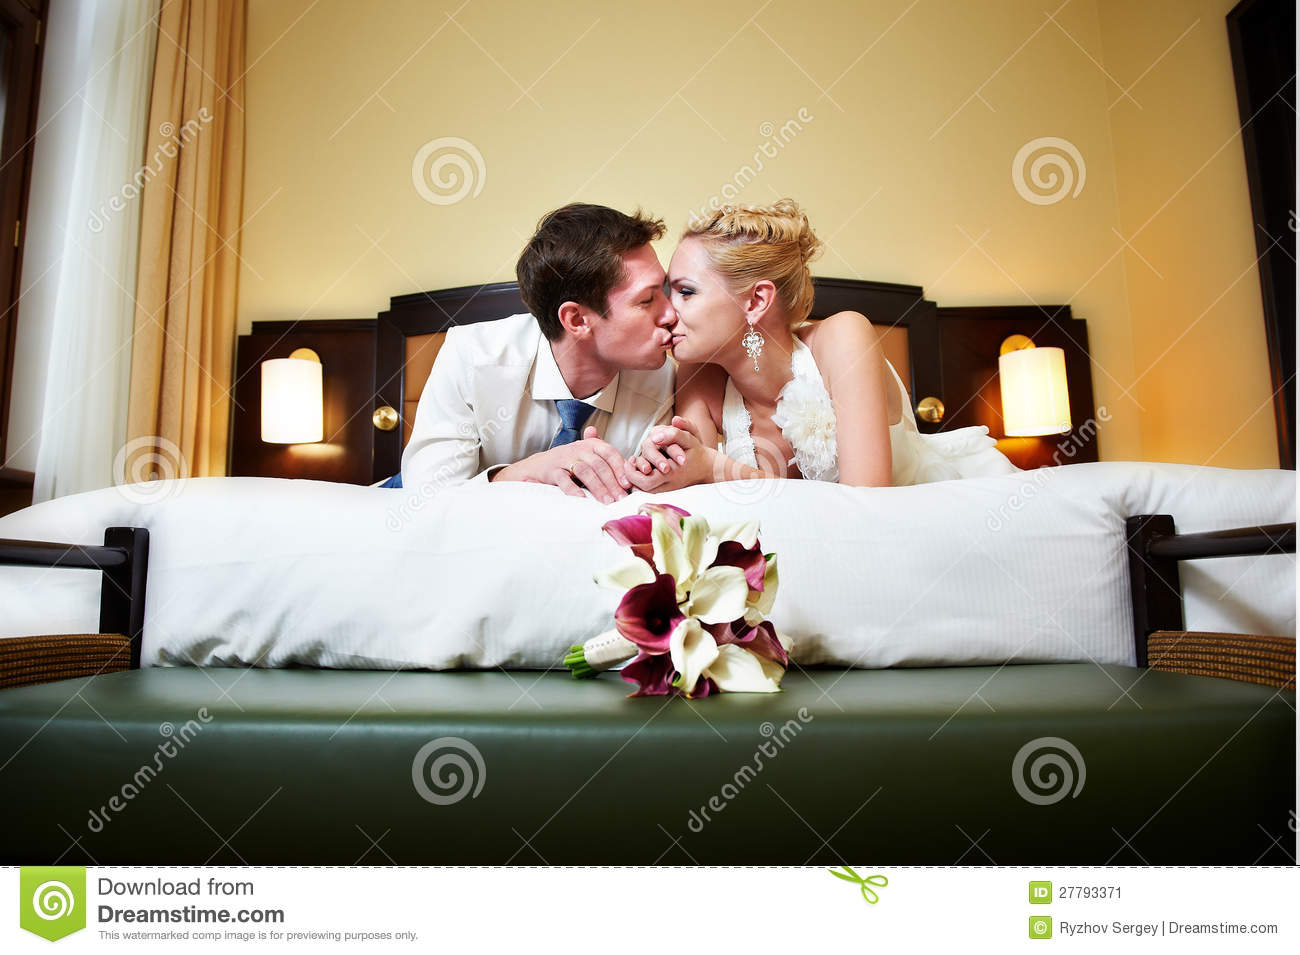 Romantic Kiss Happy Bride And Groom In Bedroom Stock Image